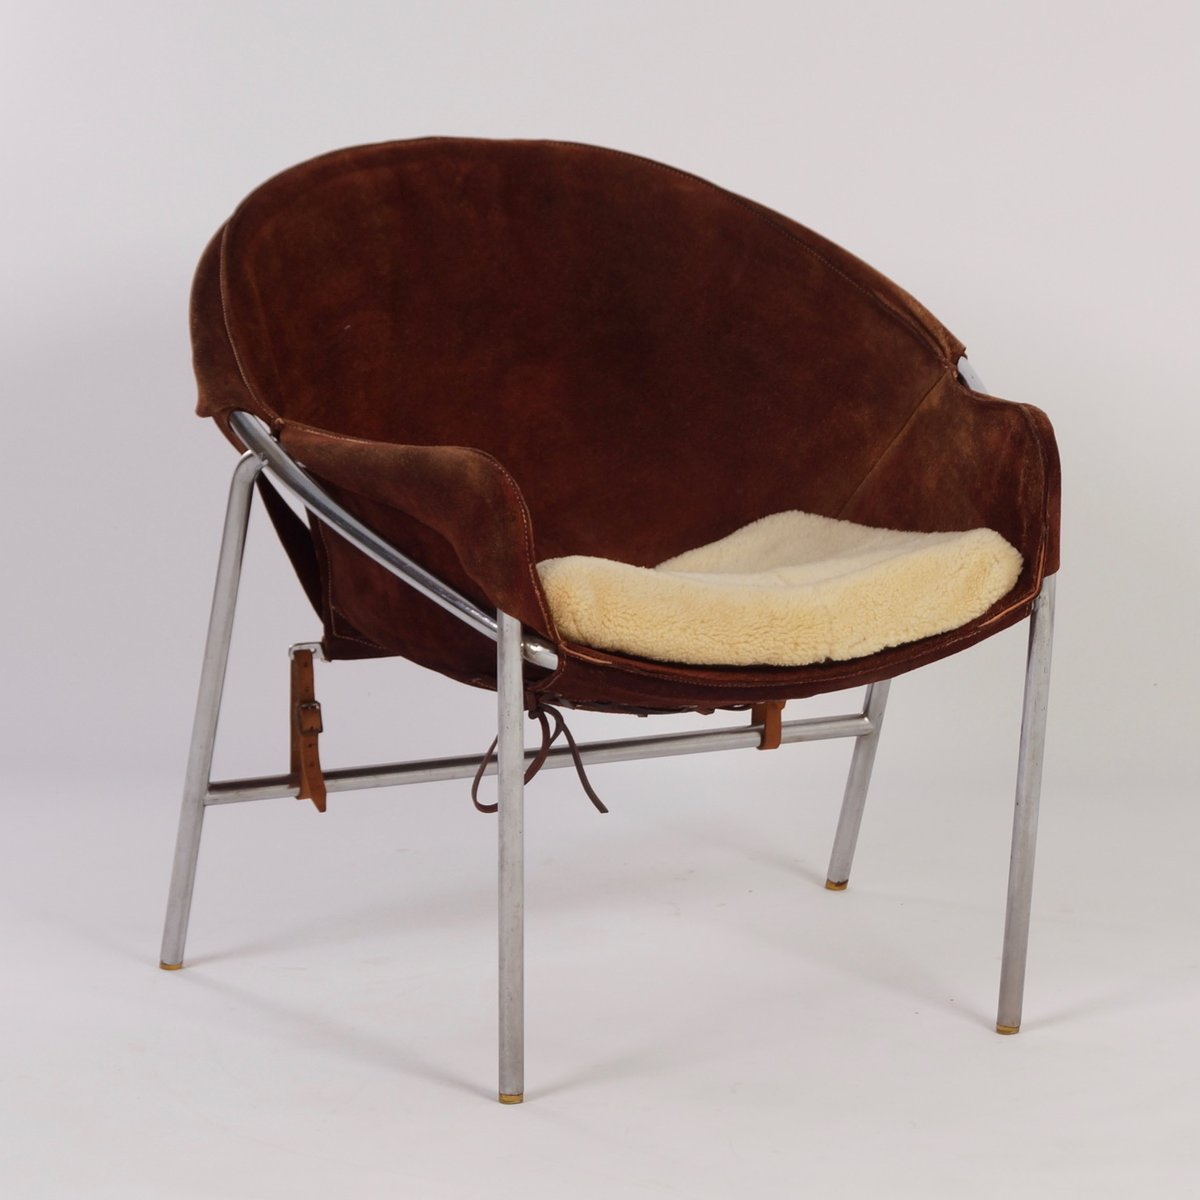 Danish Dark Brown Suede Sling Chair By Erik Jørgensen For Bovirke, 1950s